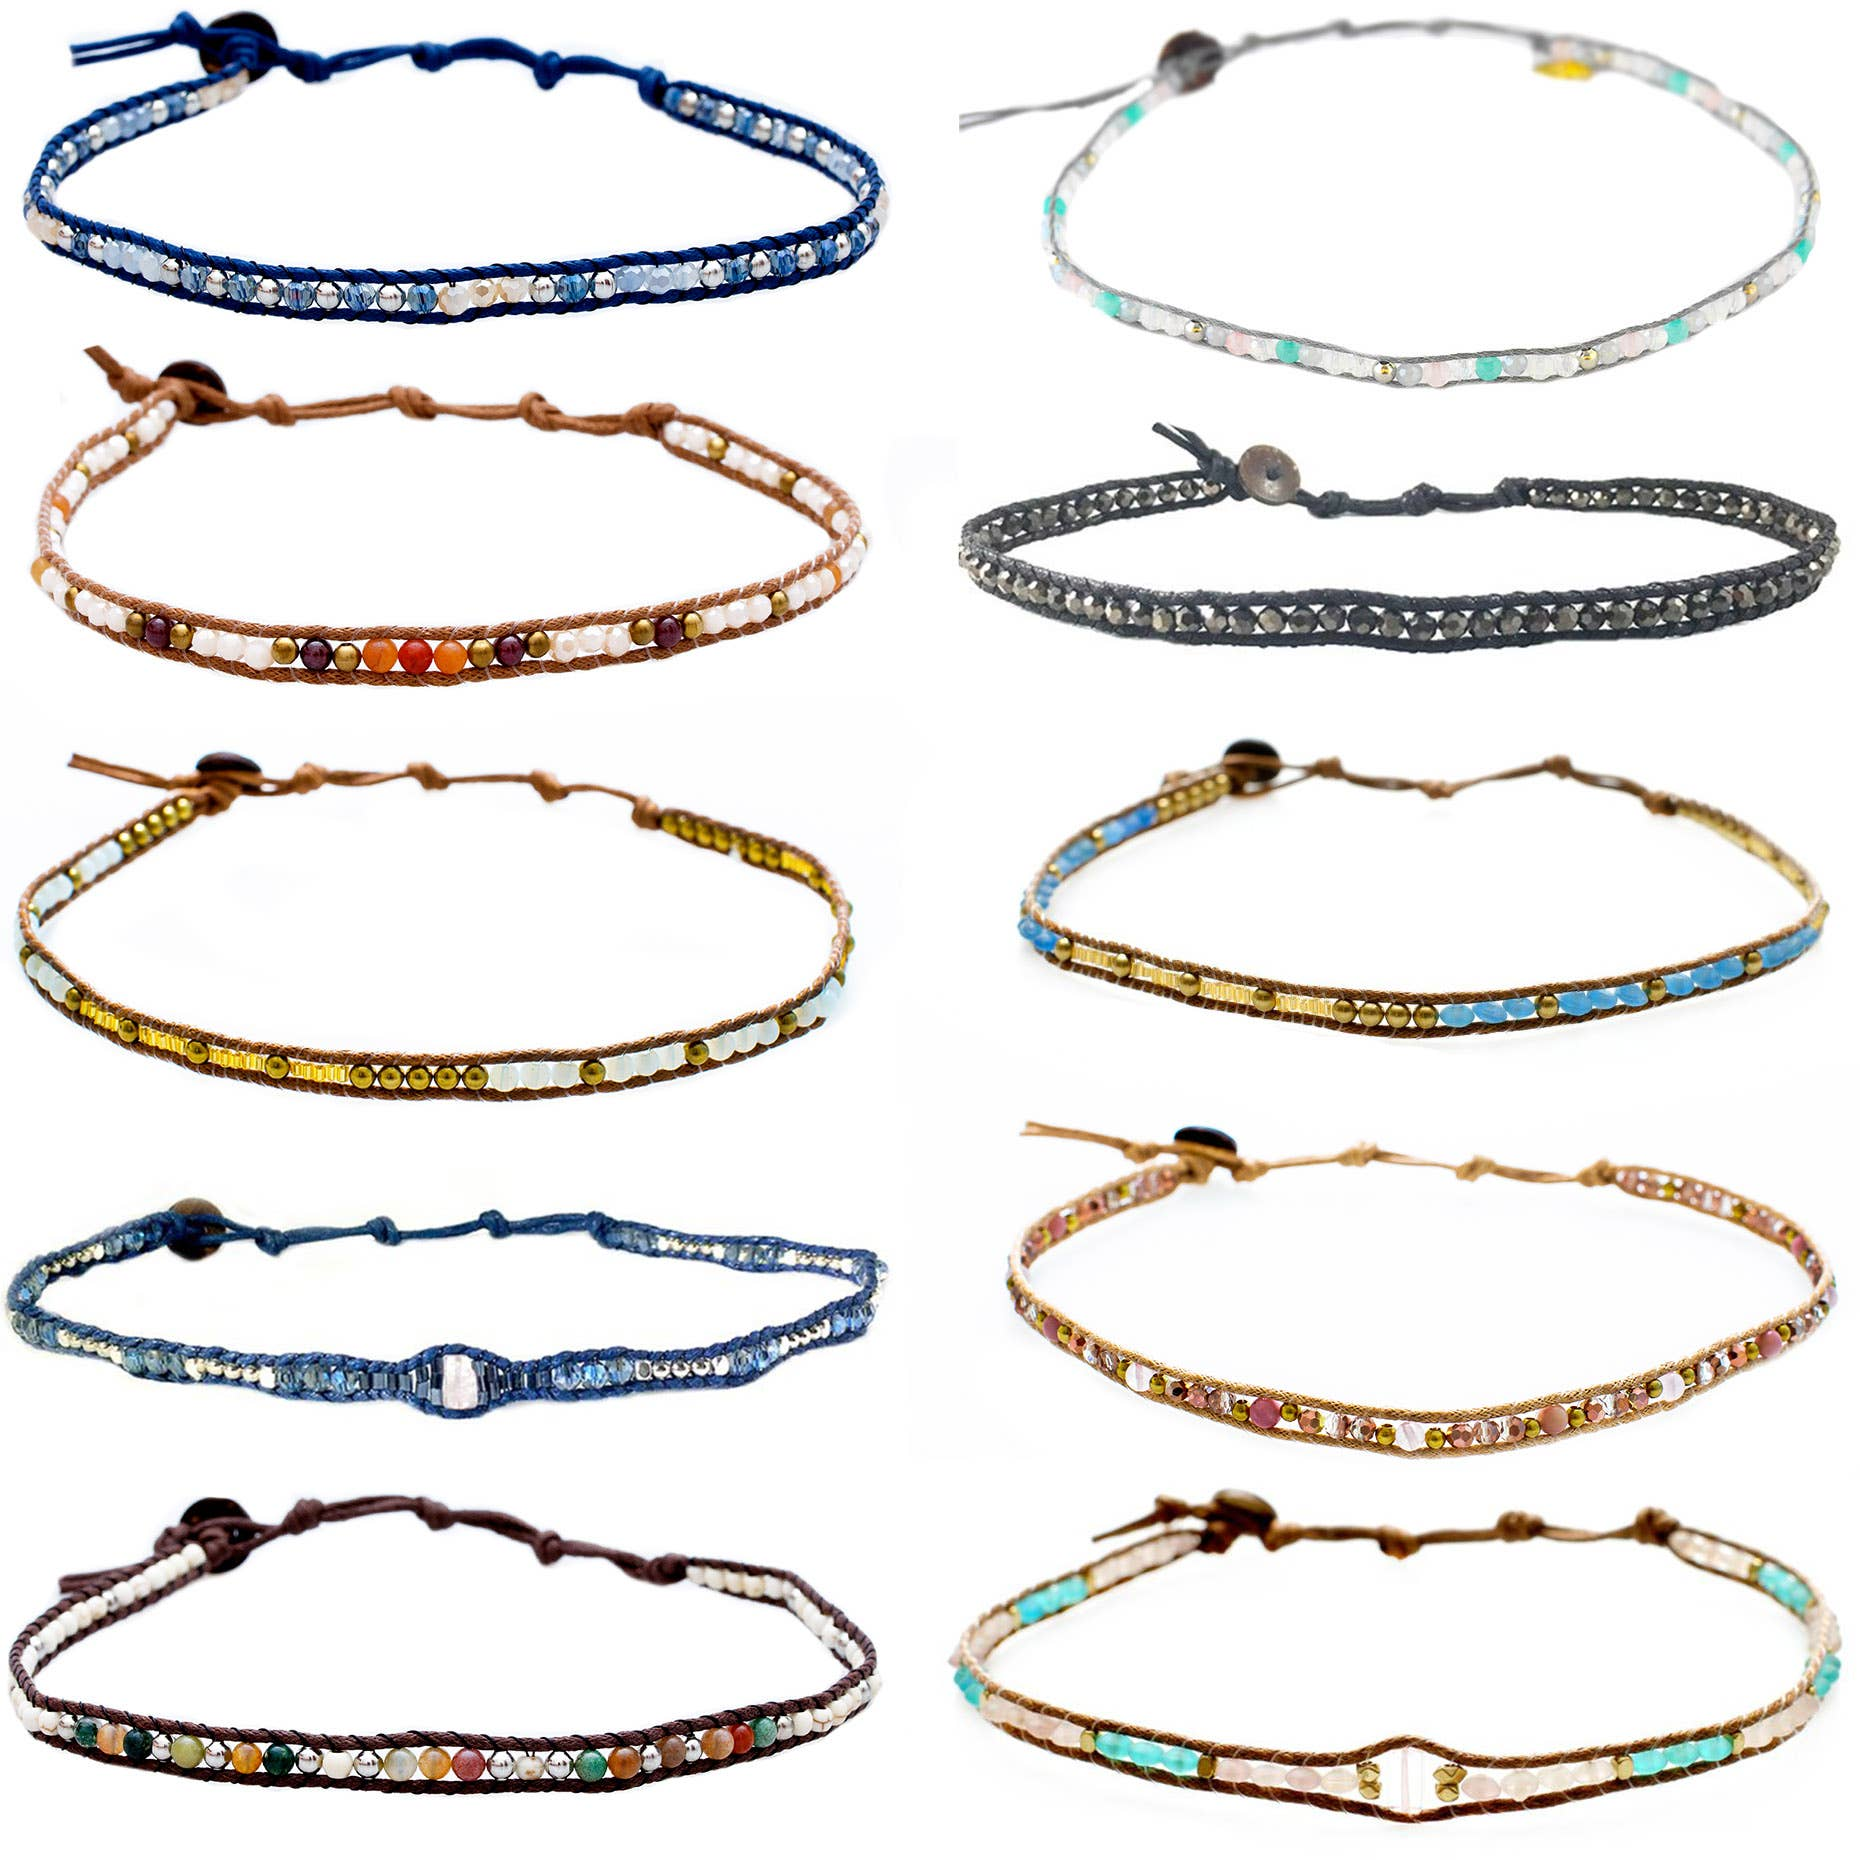 Double wrap beaded chokers-Accessory-Branded Envy